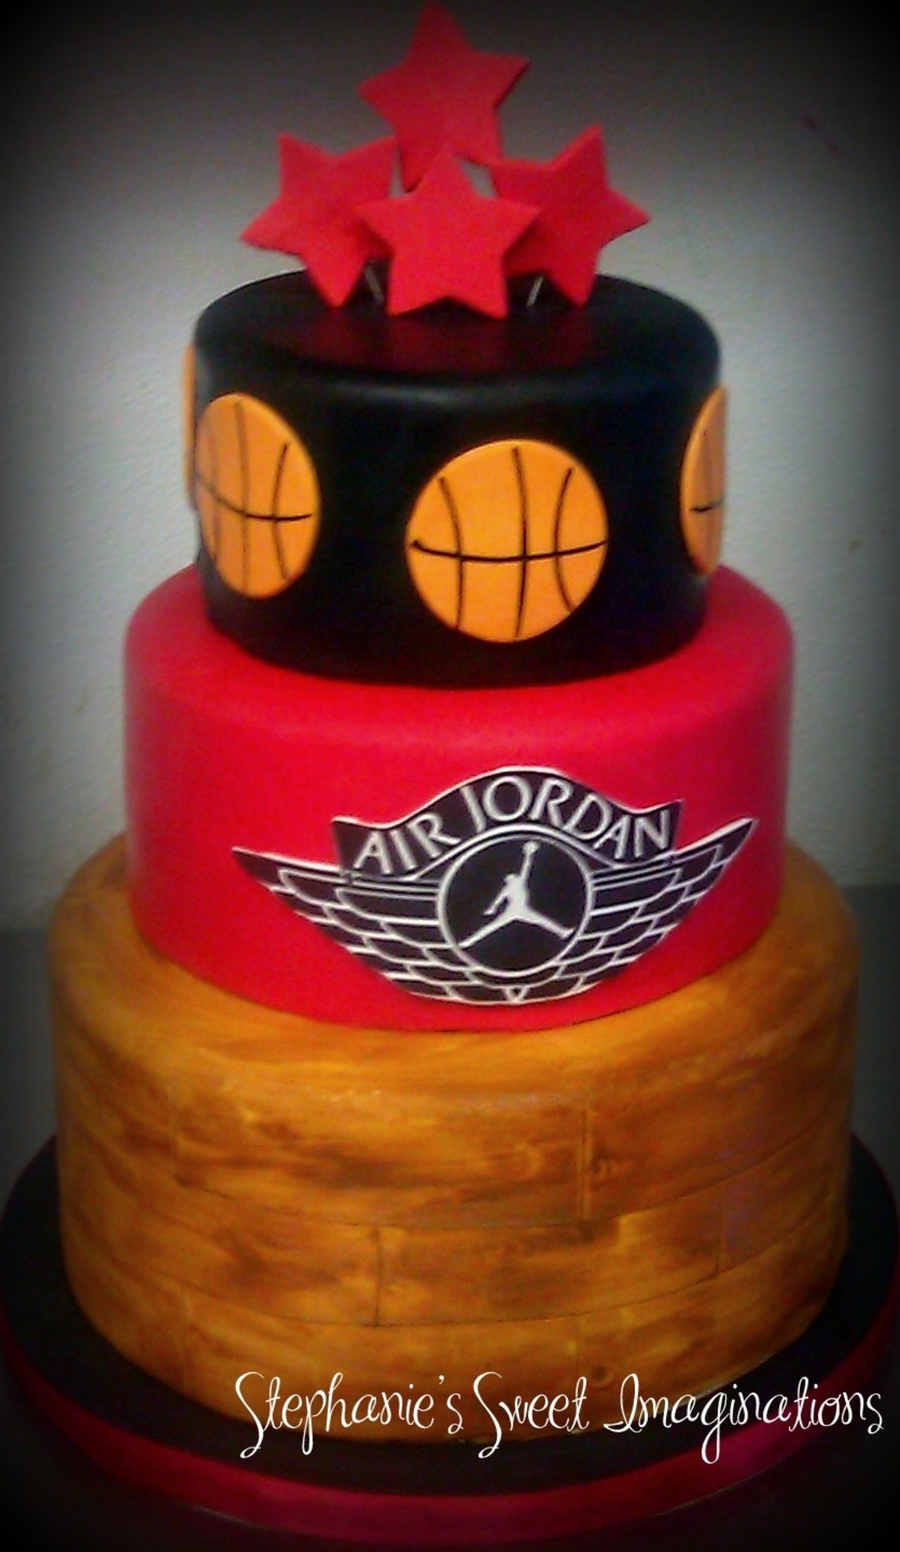 Air Jordan Baby Shower Cake on Cake Central